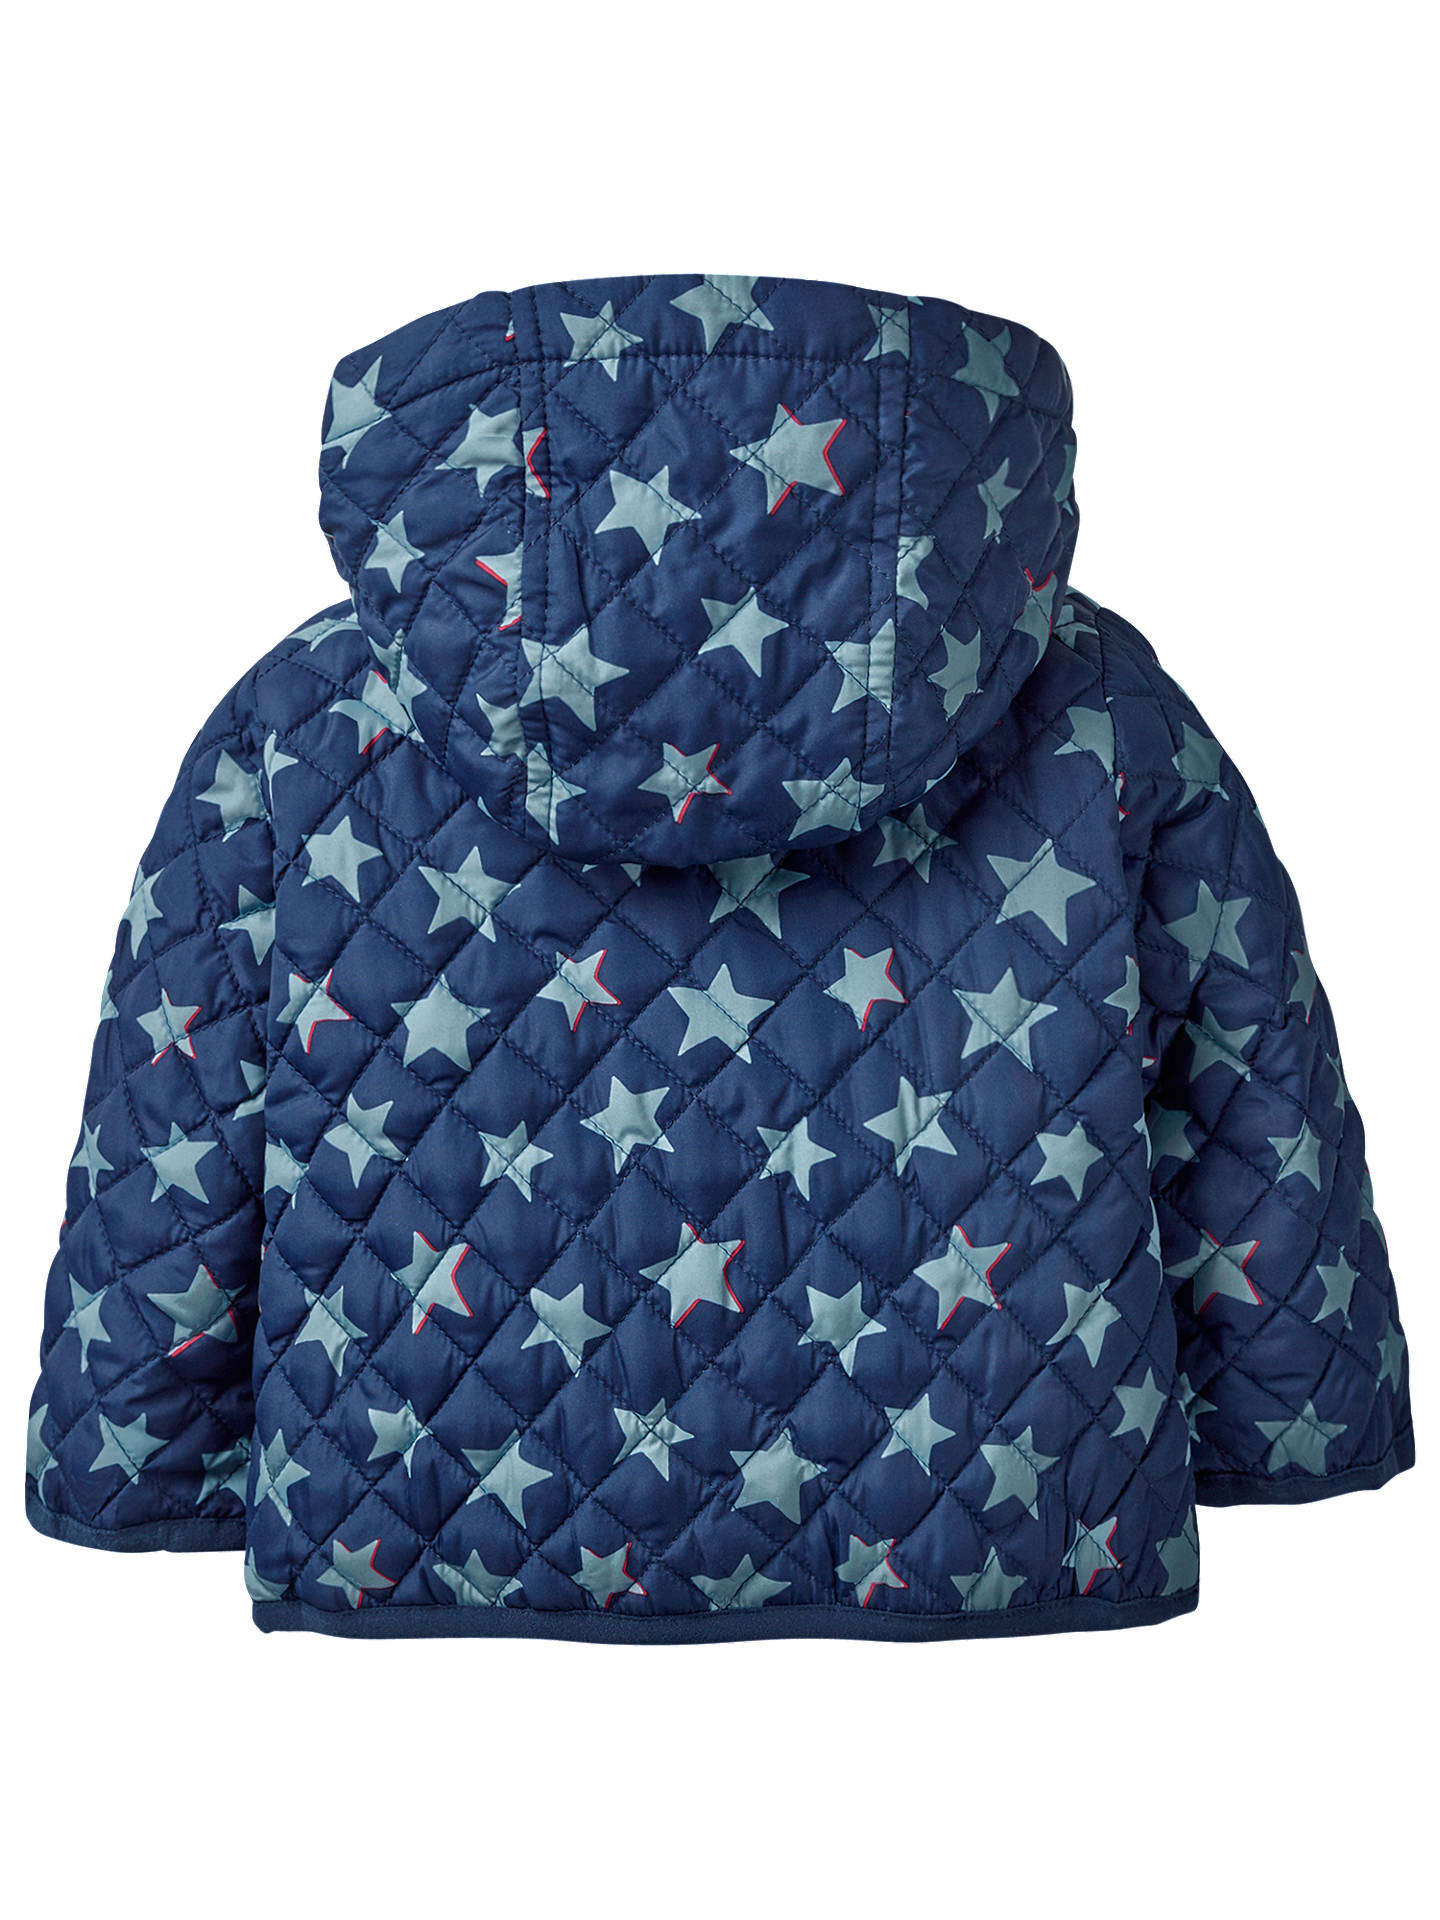 Mini Boden Baby Starry Quilted Coat Beacon Blue At John Lewis